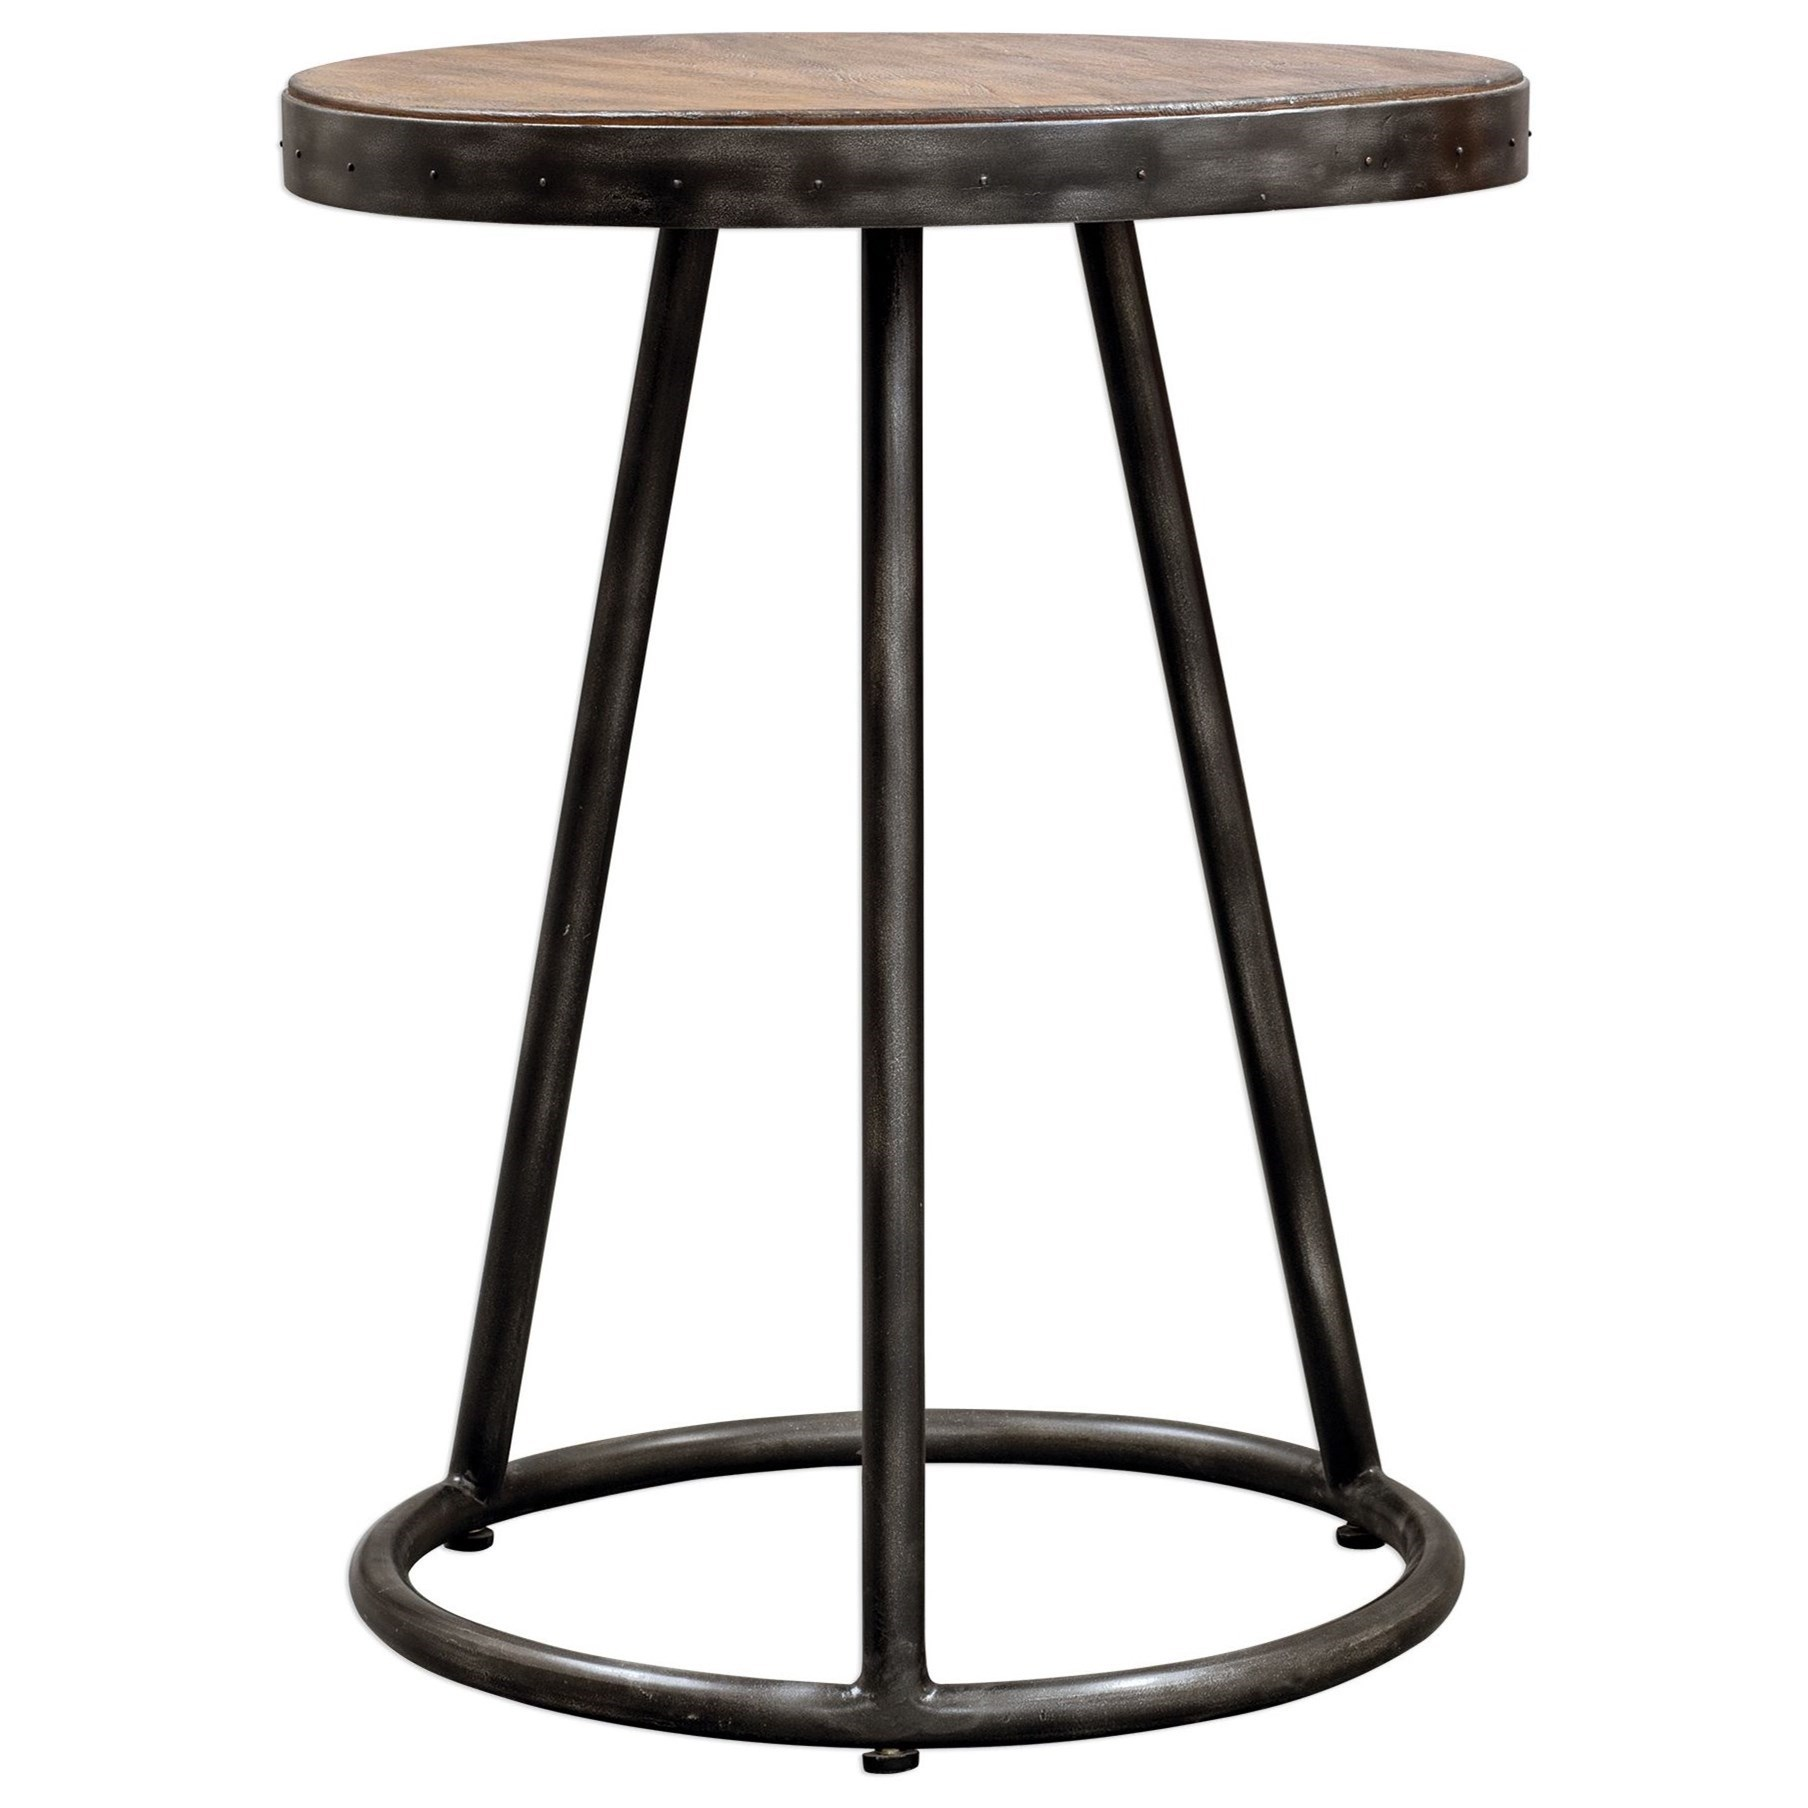 Accent Furniture - Occasional Tables Hector Round Accent Table by Uttermost at Reid's Furniture